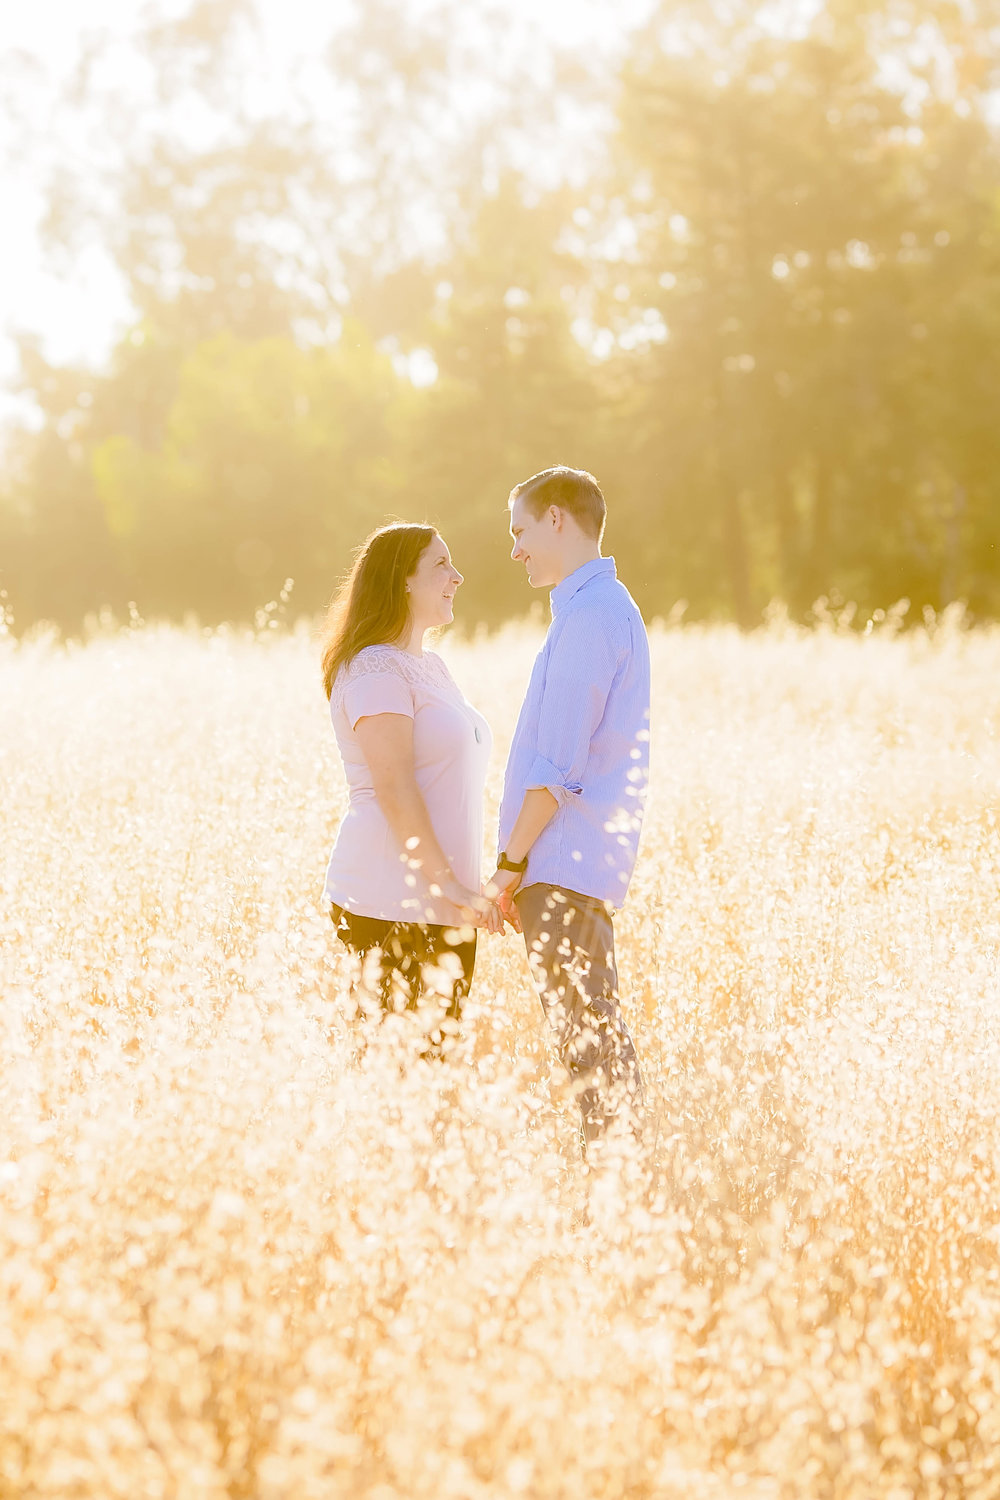 East Tennessee engagement photography, anniversary photography, sunset couple photo, Johnson City, TN photography